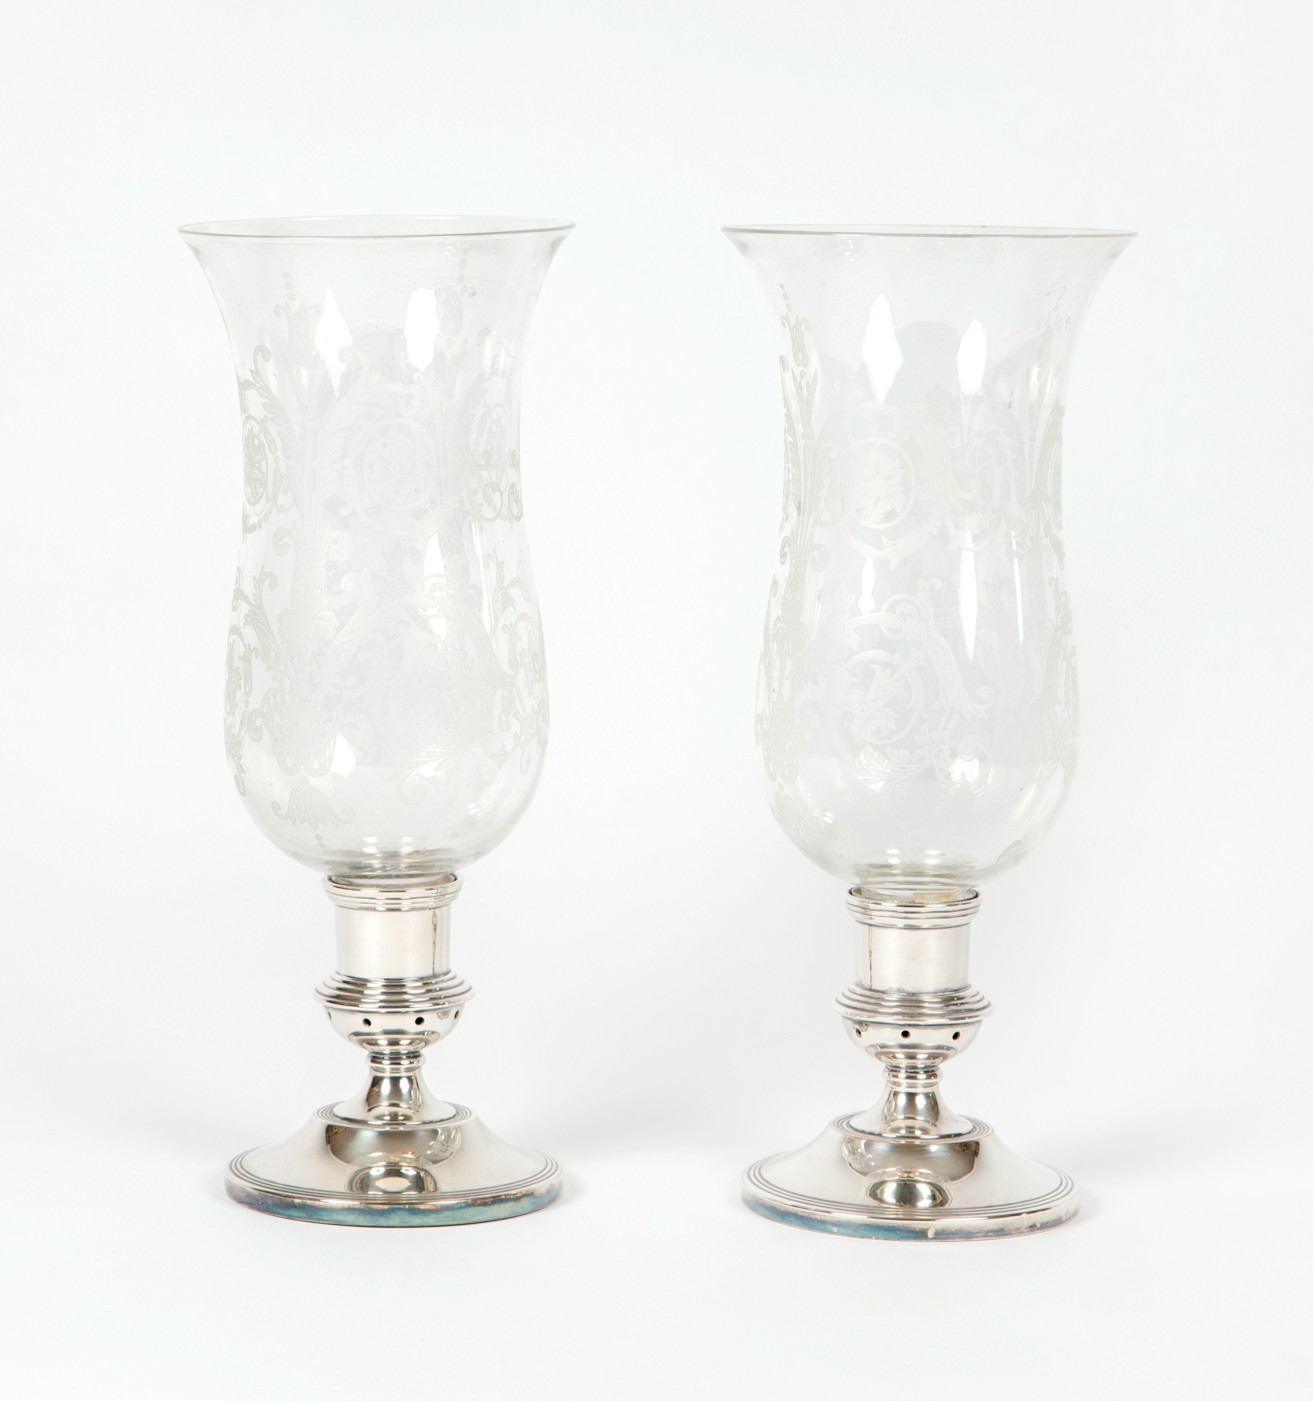 A pair of silver plated and glass stormshades, 20th century